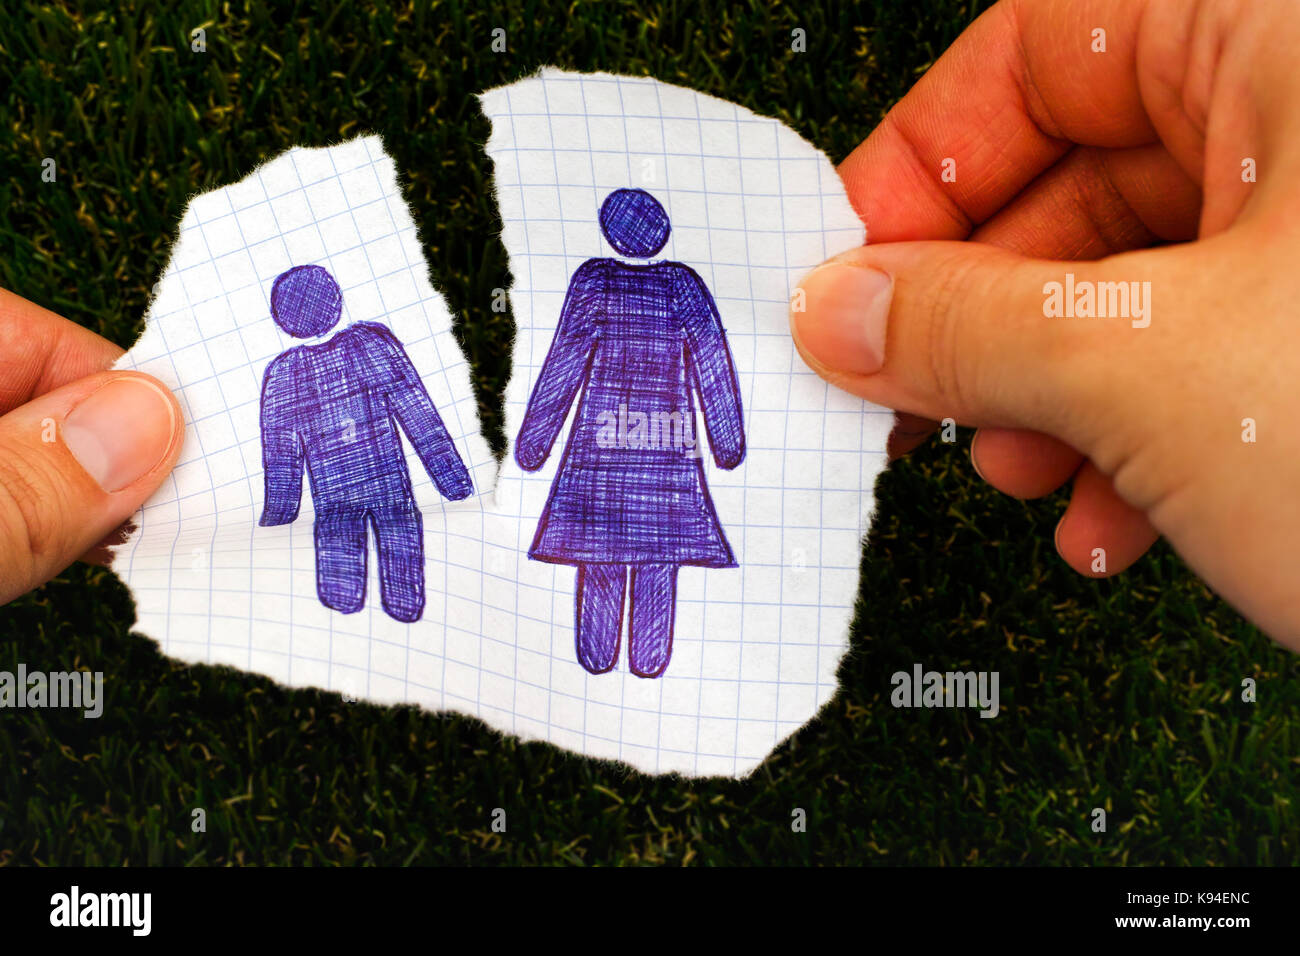 Woman hands ripping piece of paper with hand drawn man and woman figures. Grass background. Doodle style. - Stock Image